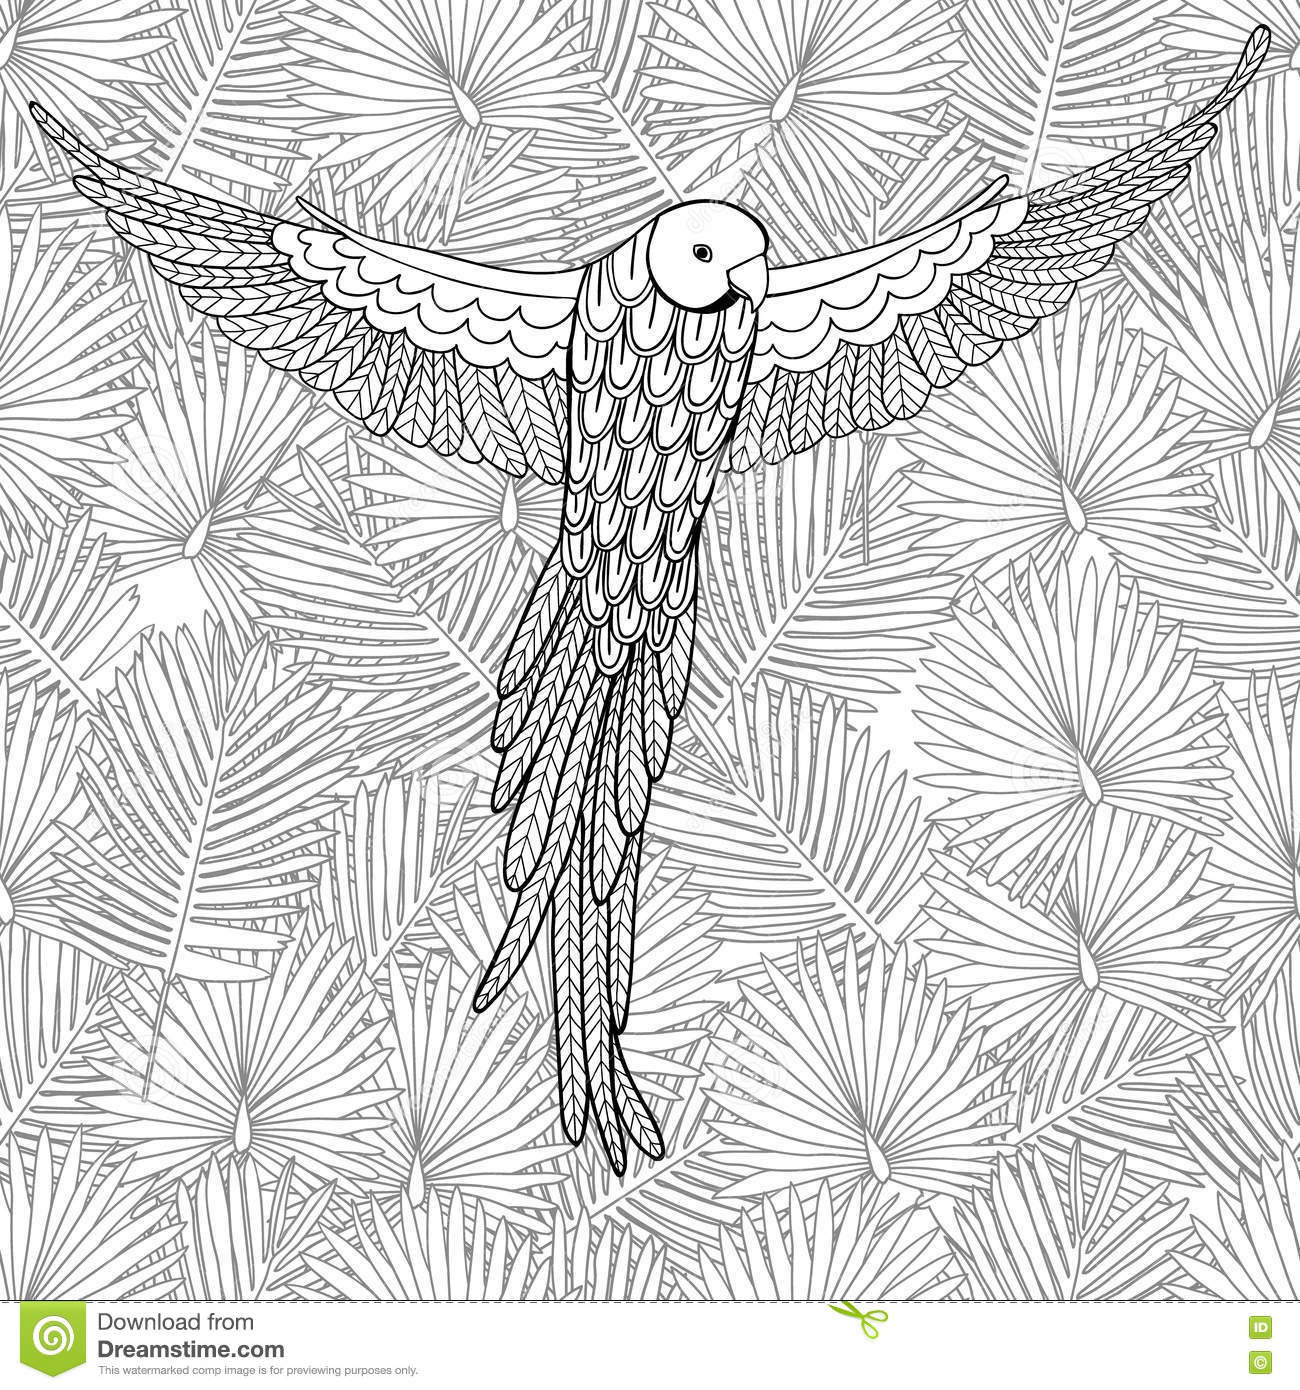 Coloring page for adult coloring background Coloring book background